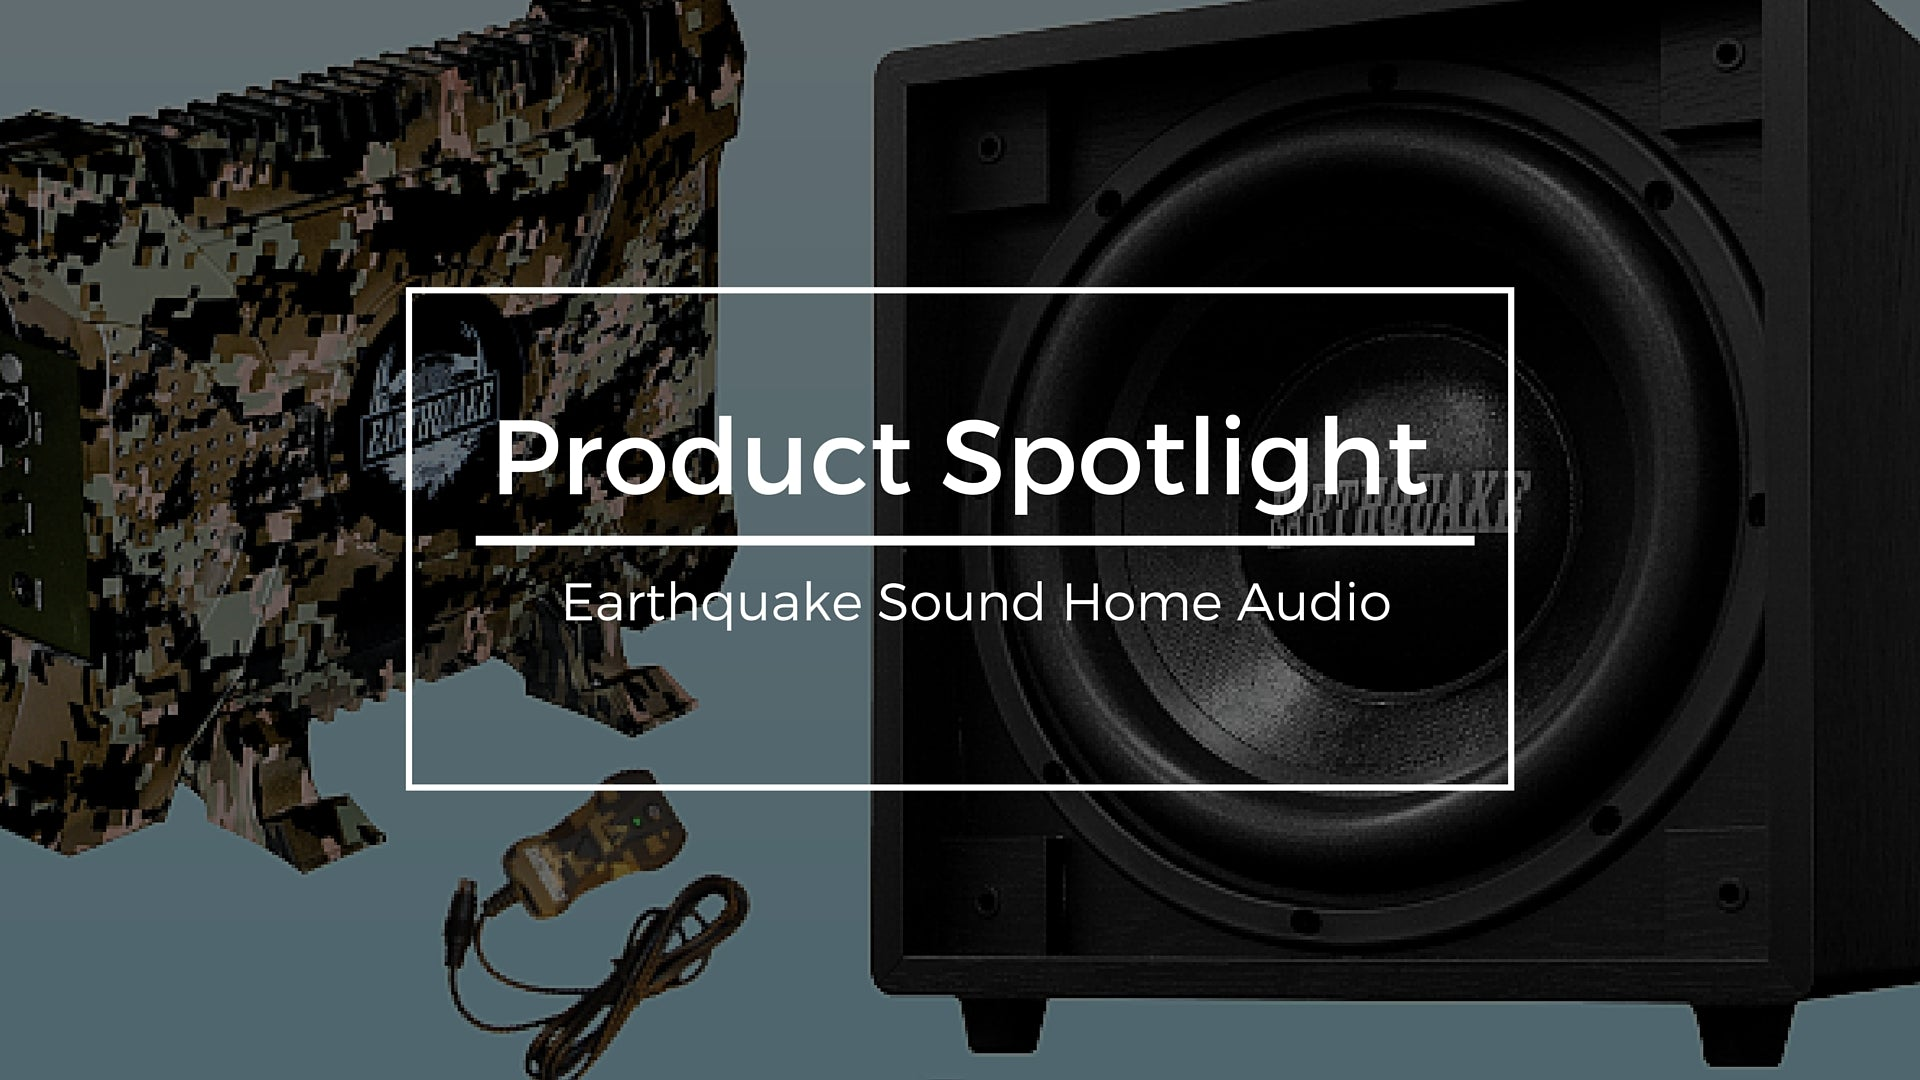 Product Spotlight Earthquake Sound Home Audio